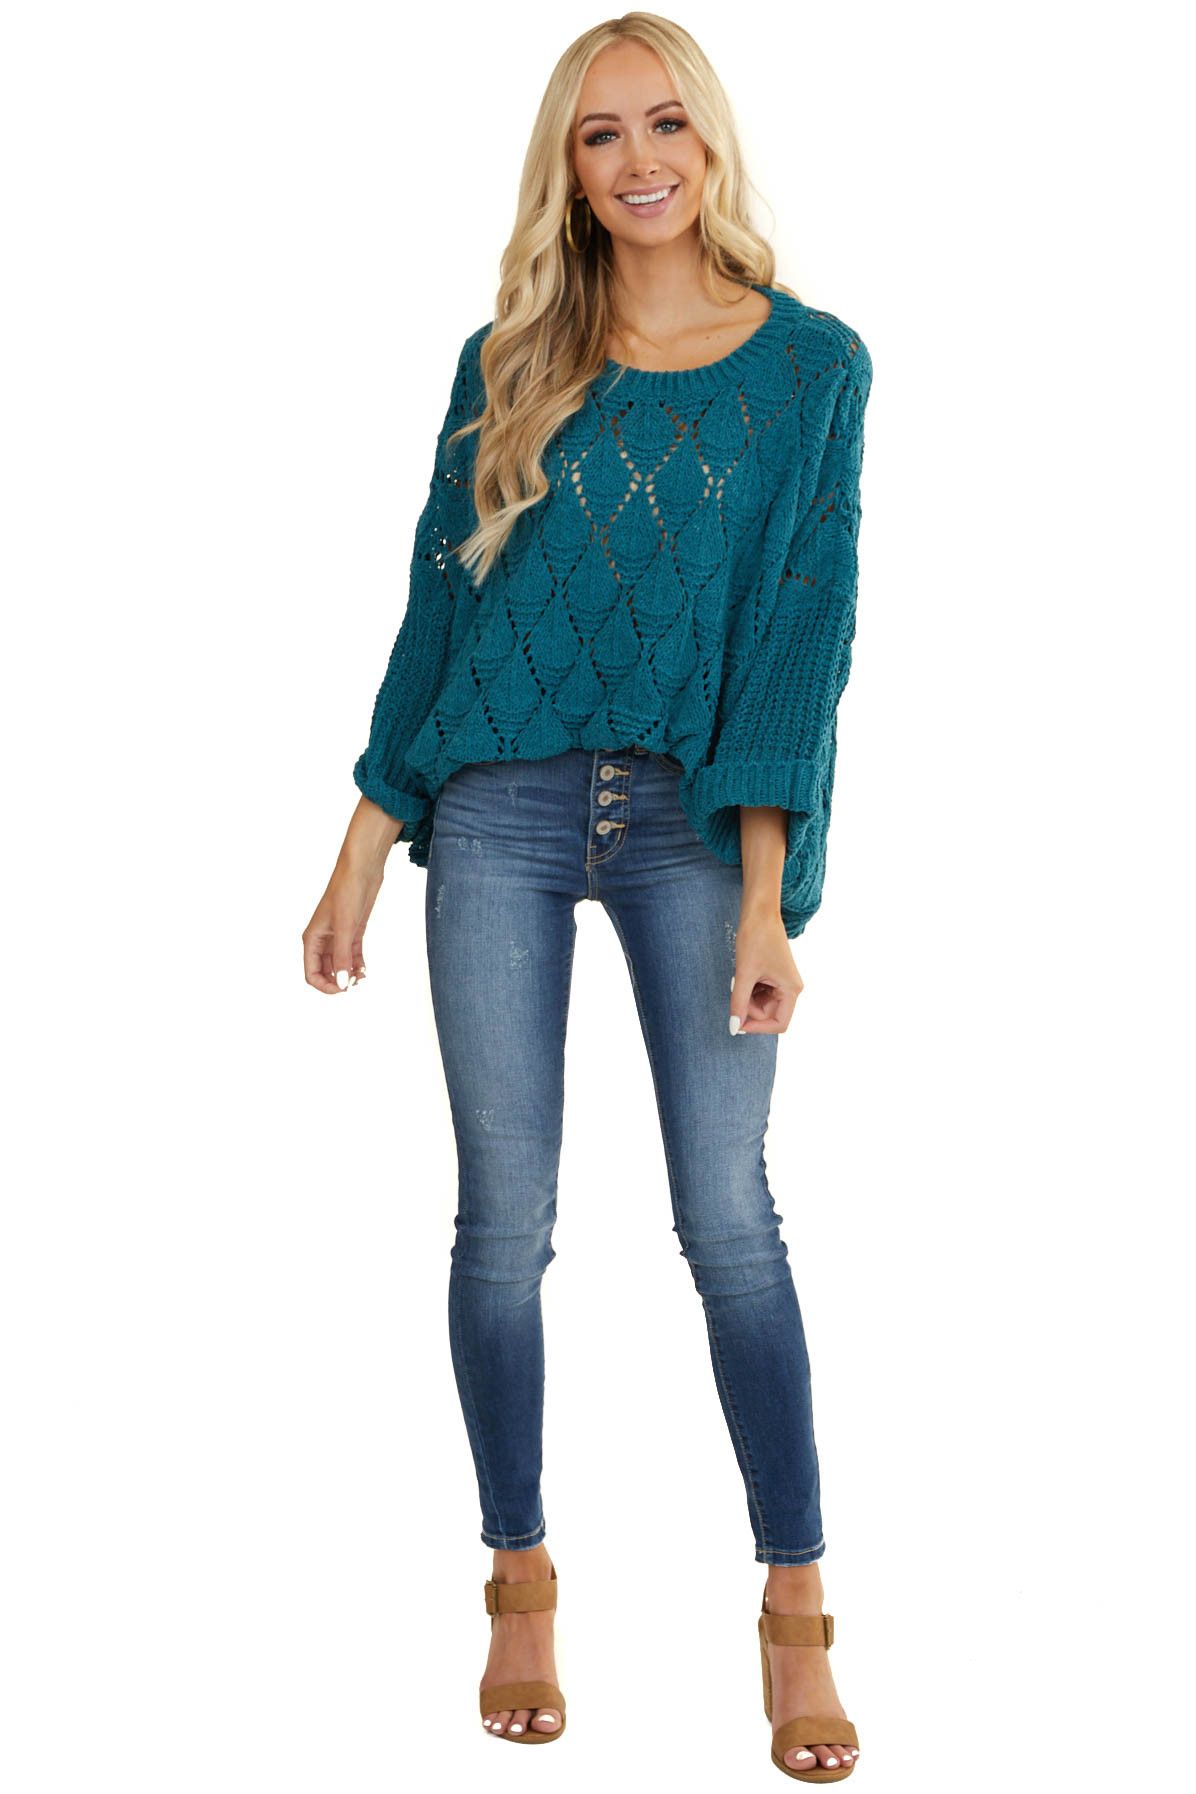 Dark Teal Loose Knit Chenille Sweater with Cuffed Sleeves